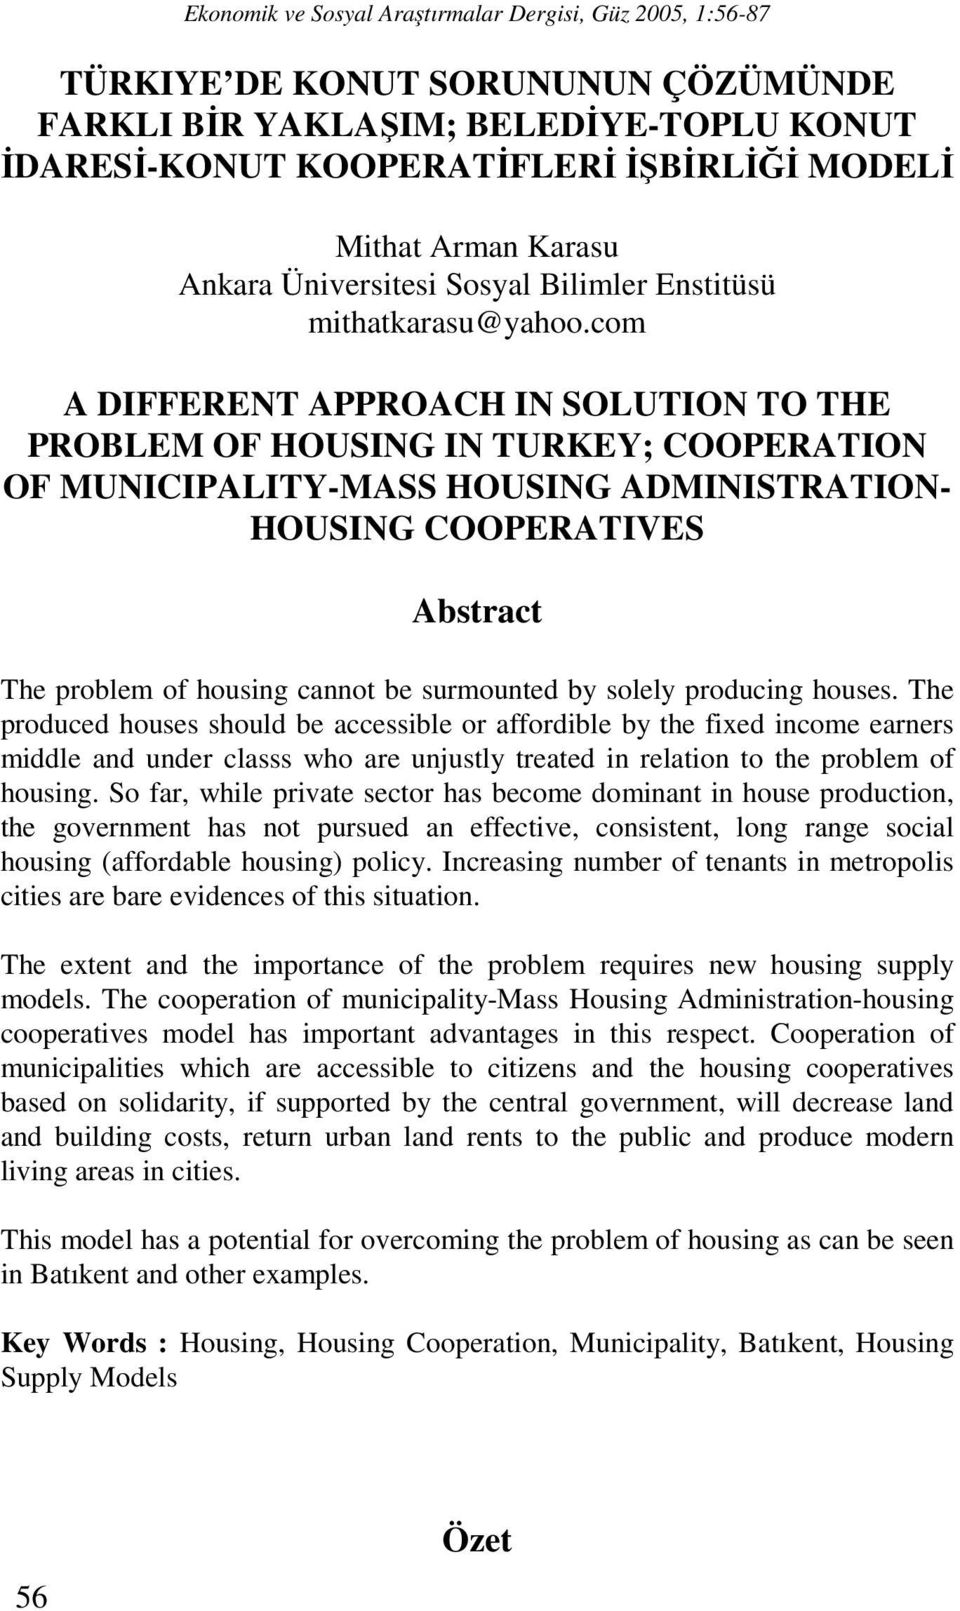 com A DIFFERENT APPROACH IN SOLUTION TO THE PROBLEM OF HOUSING IN TURKEY; COOPERATION OF MUNICIPALITY-MASS HOUSING ADMINISTRATION- HOUSING COOPERATIVES Abstract The problem of housing cannot be